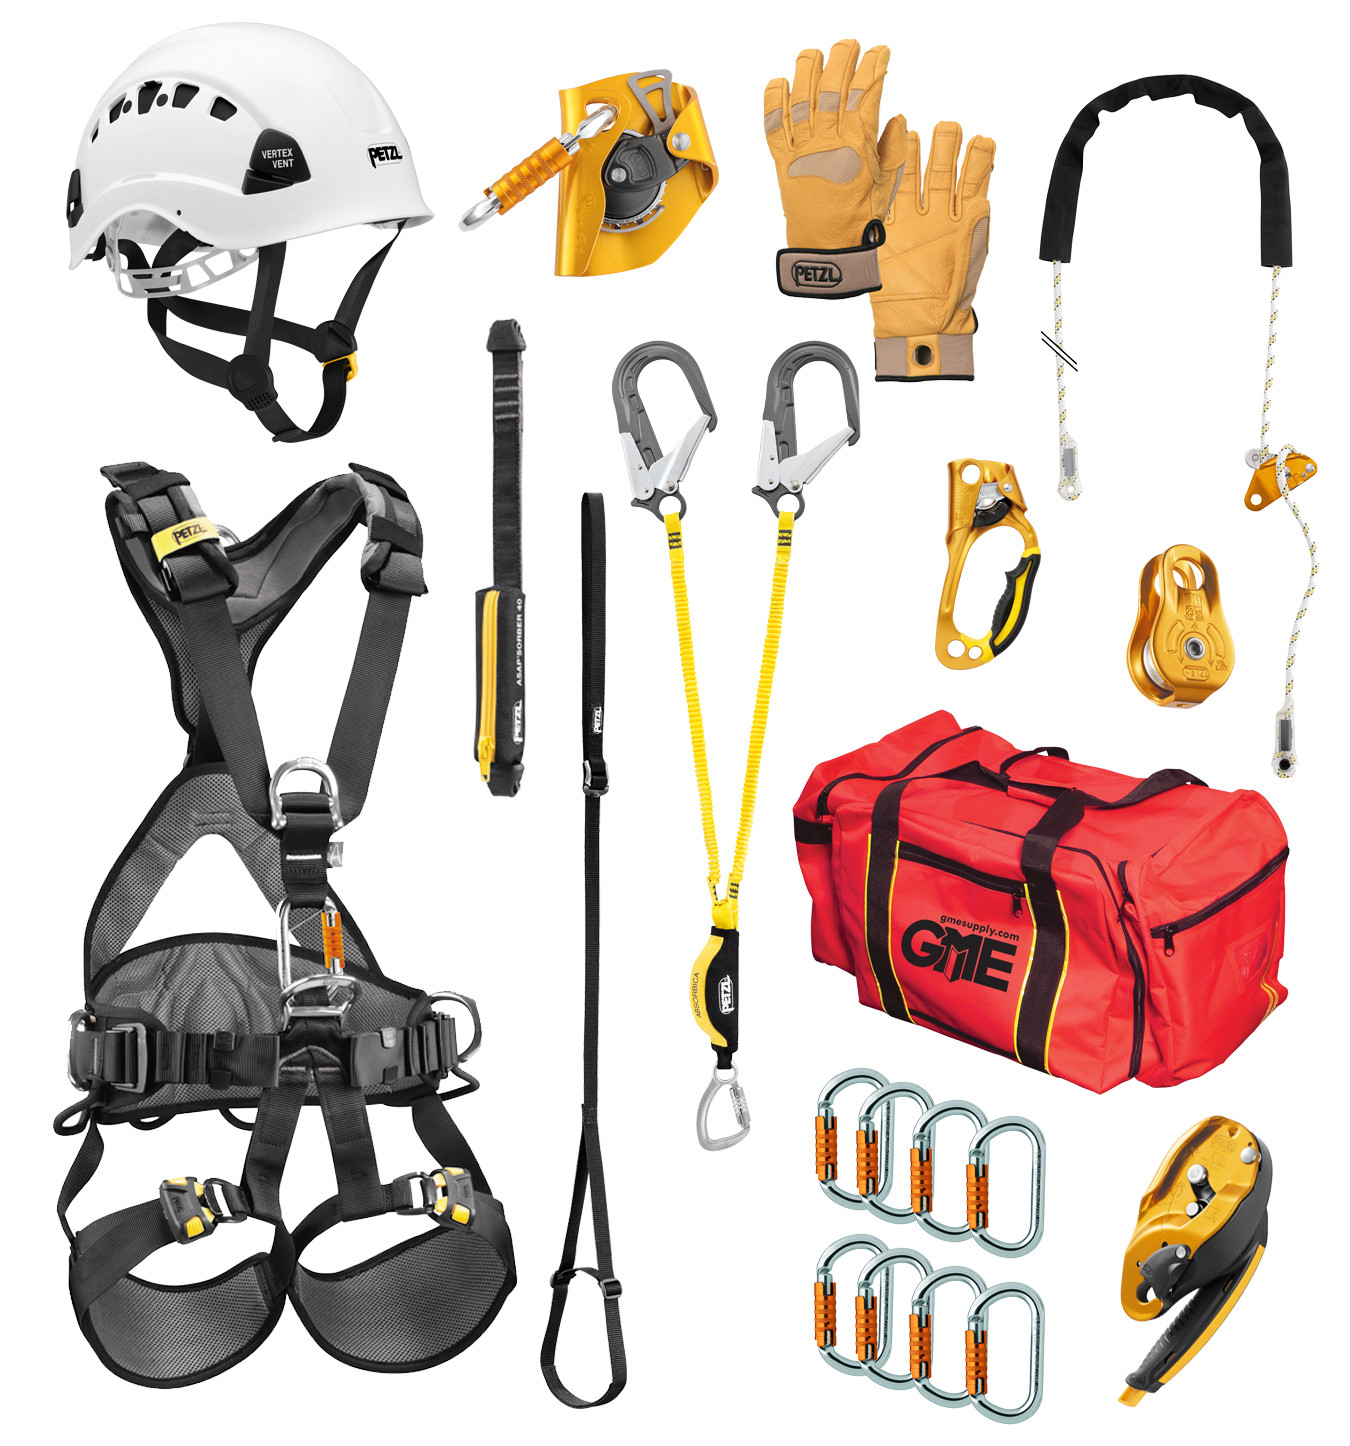 Petzl Tower Technician Safety Climbing and Protection Kit.